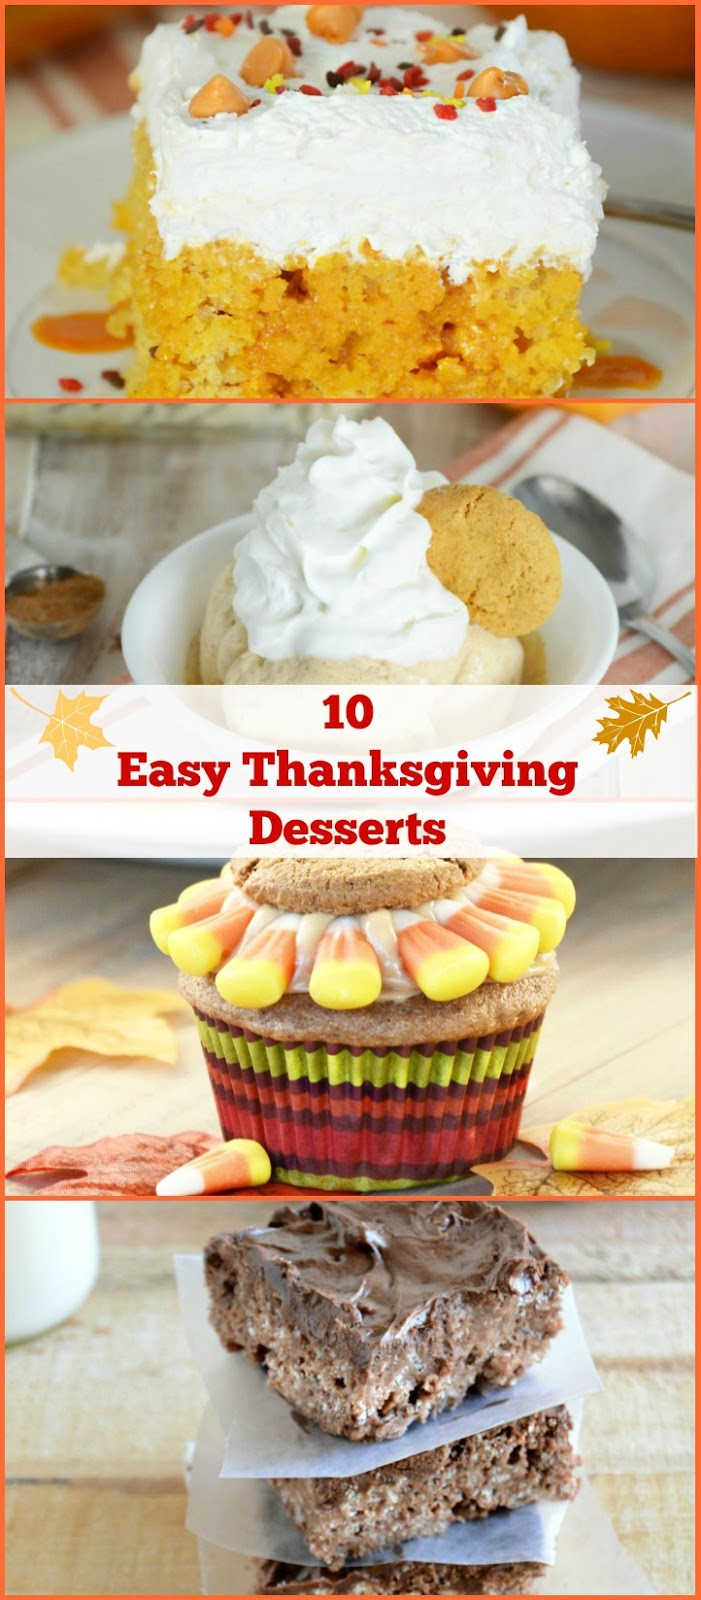 Easy Thanksgiving Desserts No Baking  10 Easy Thanksgiving Dessert Ideas Meatloaf and Melodrama